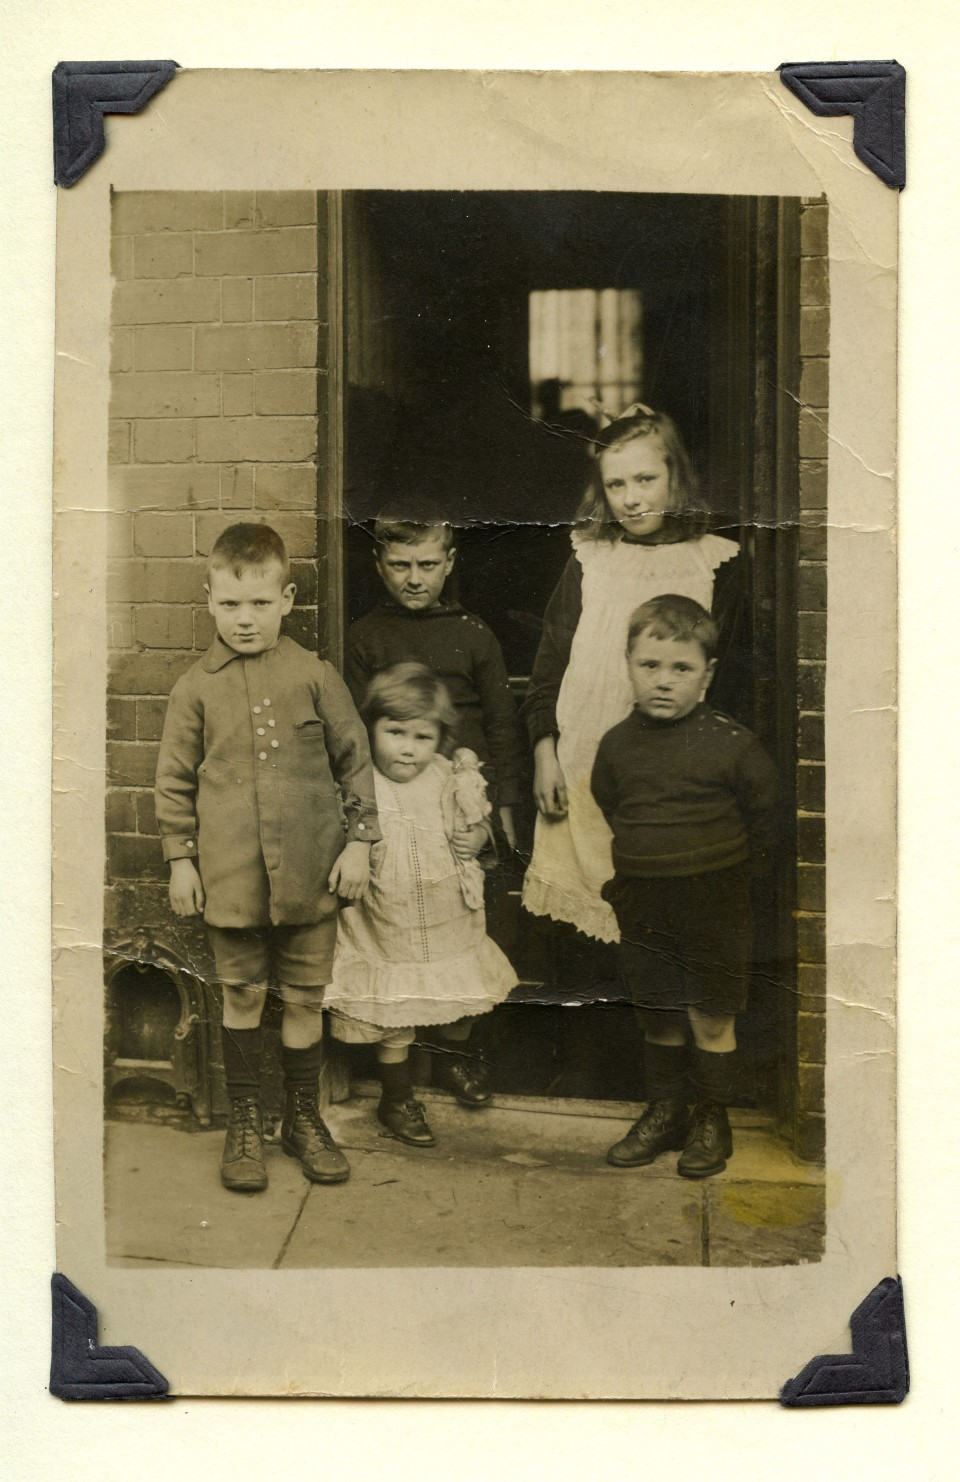 image of kids from the family album